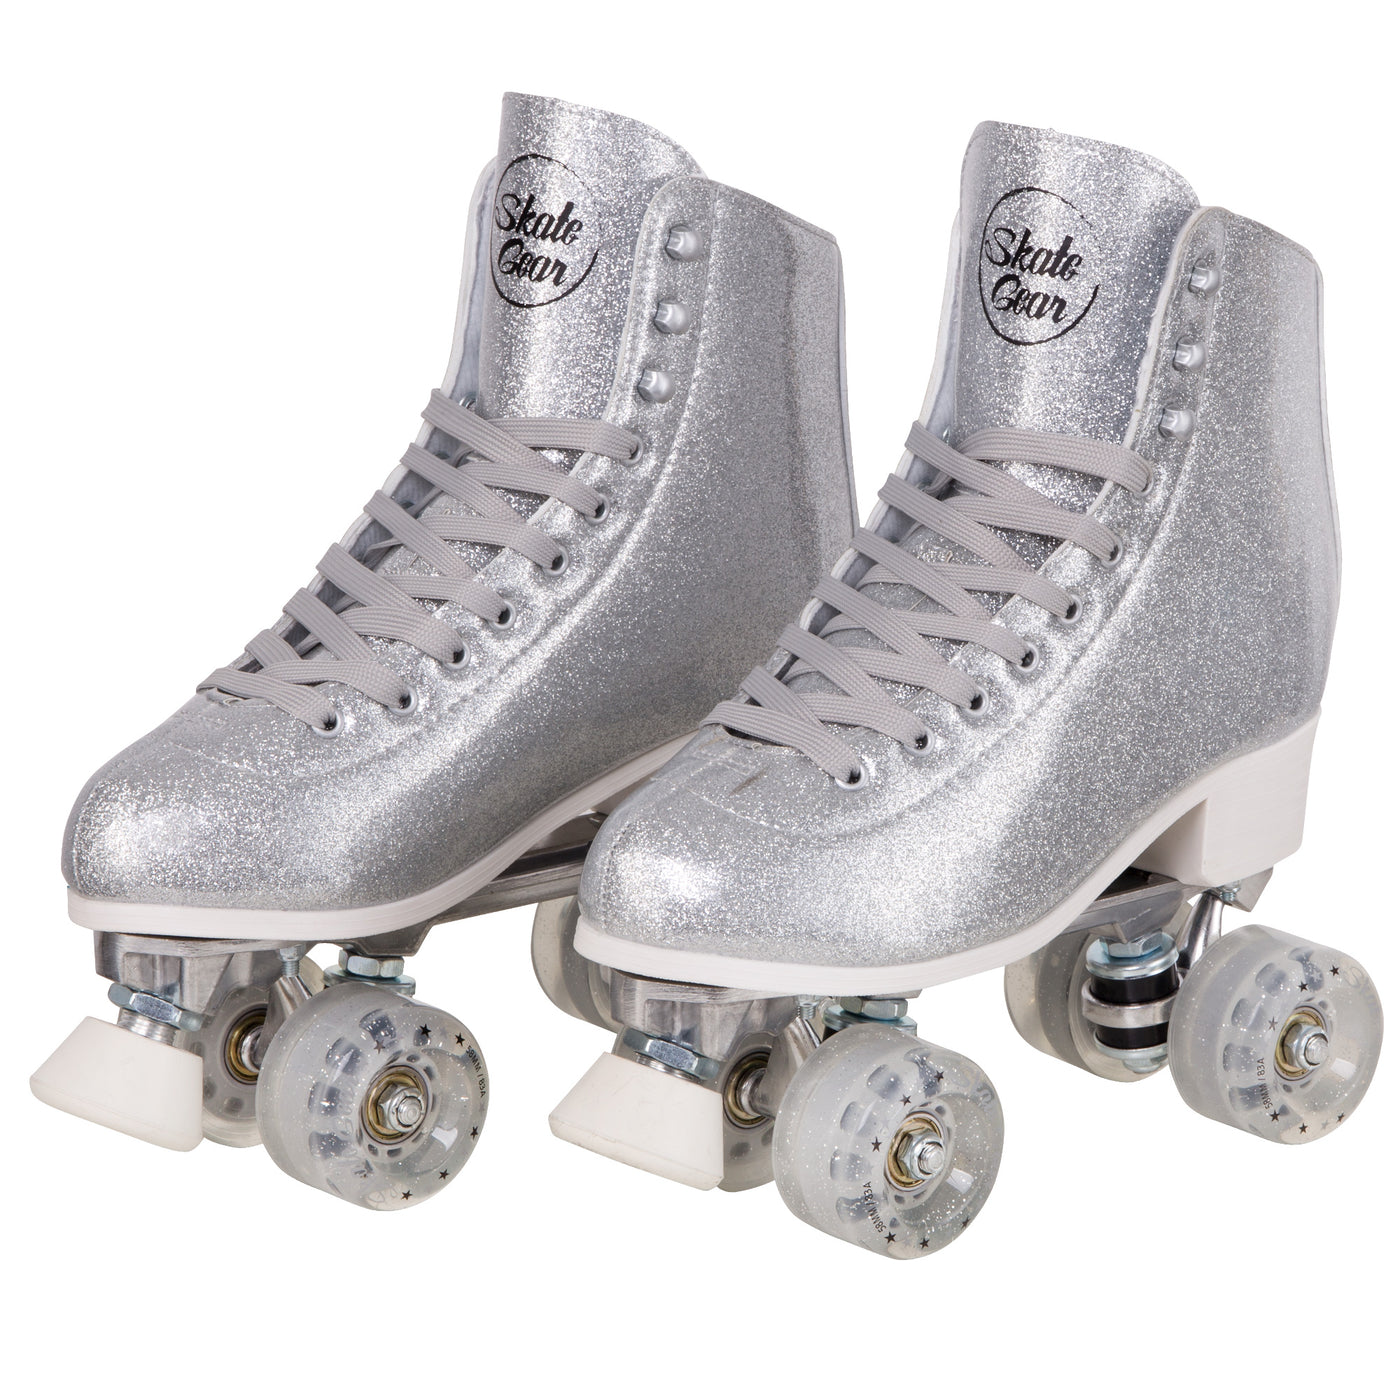 Retro Fashion High Top Design in Faux Leather for Indoor /& Outdoor Cal 7 Skate Gear Soft Boot Pink Roller Skate